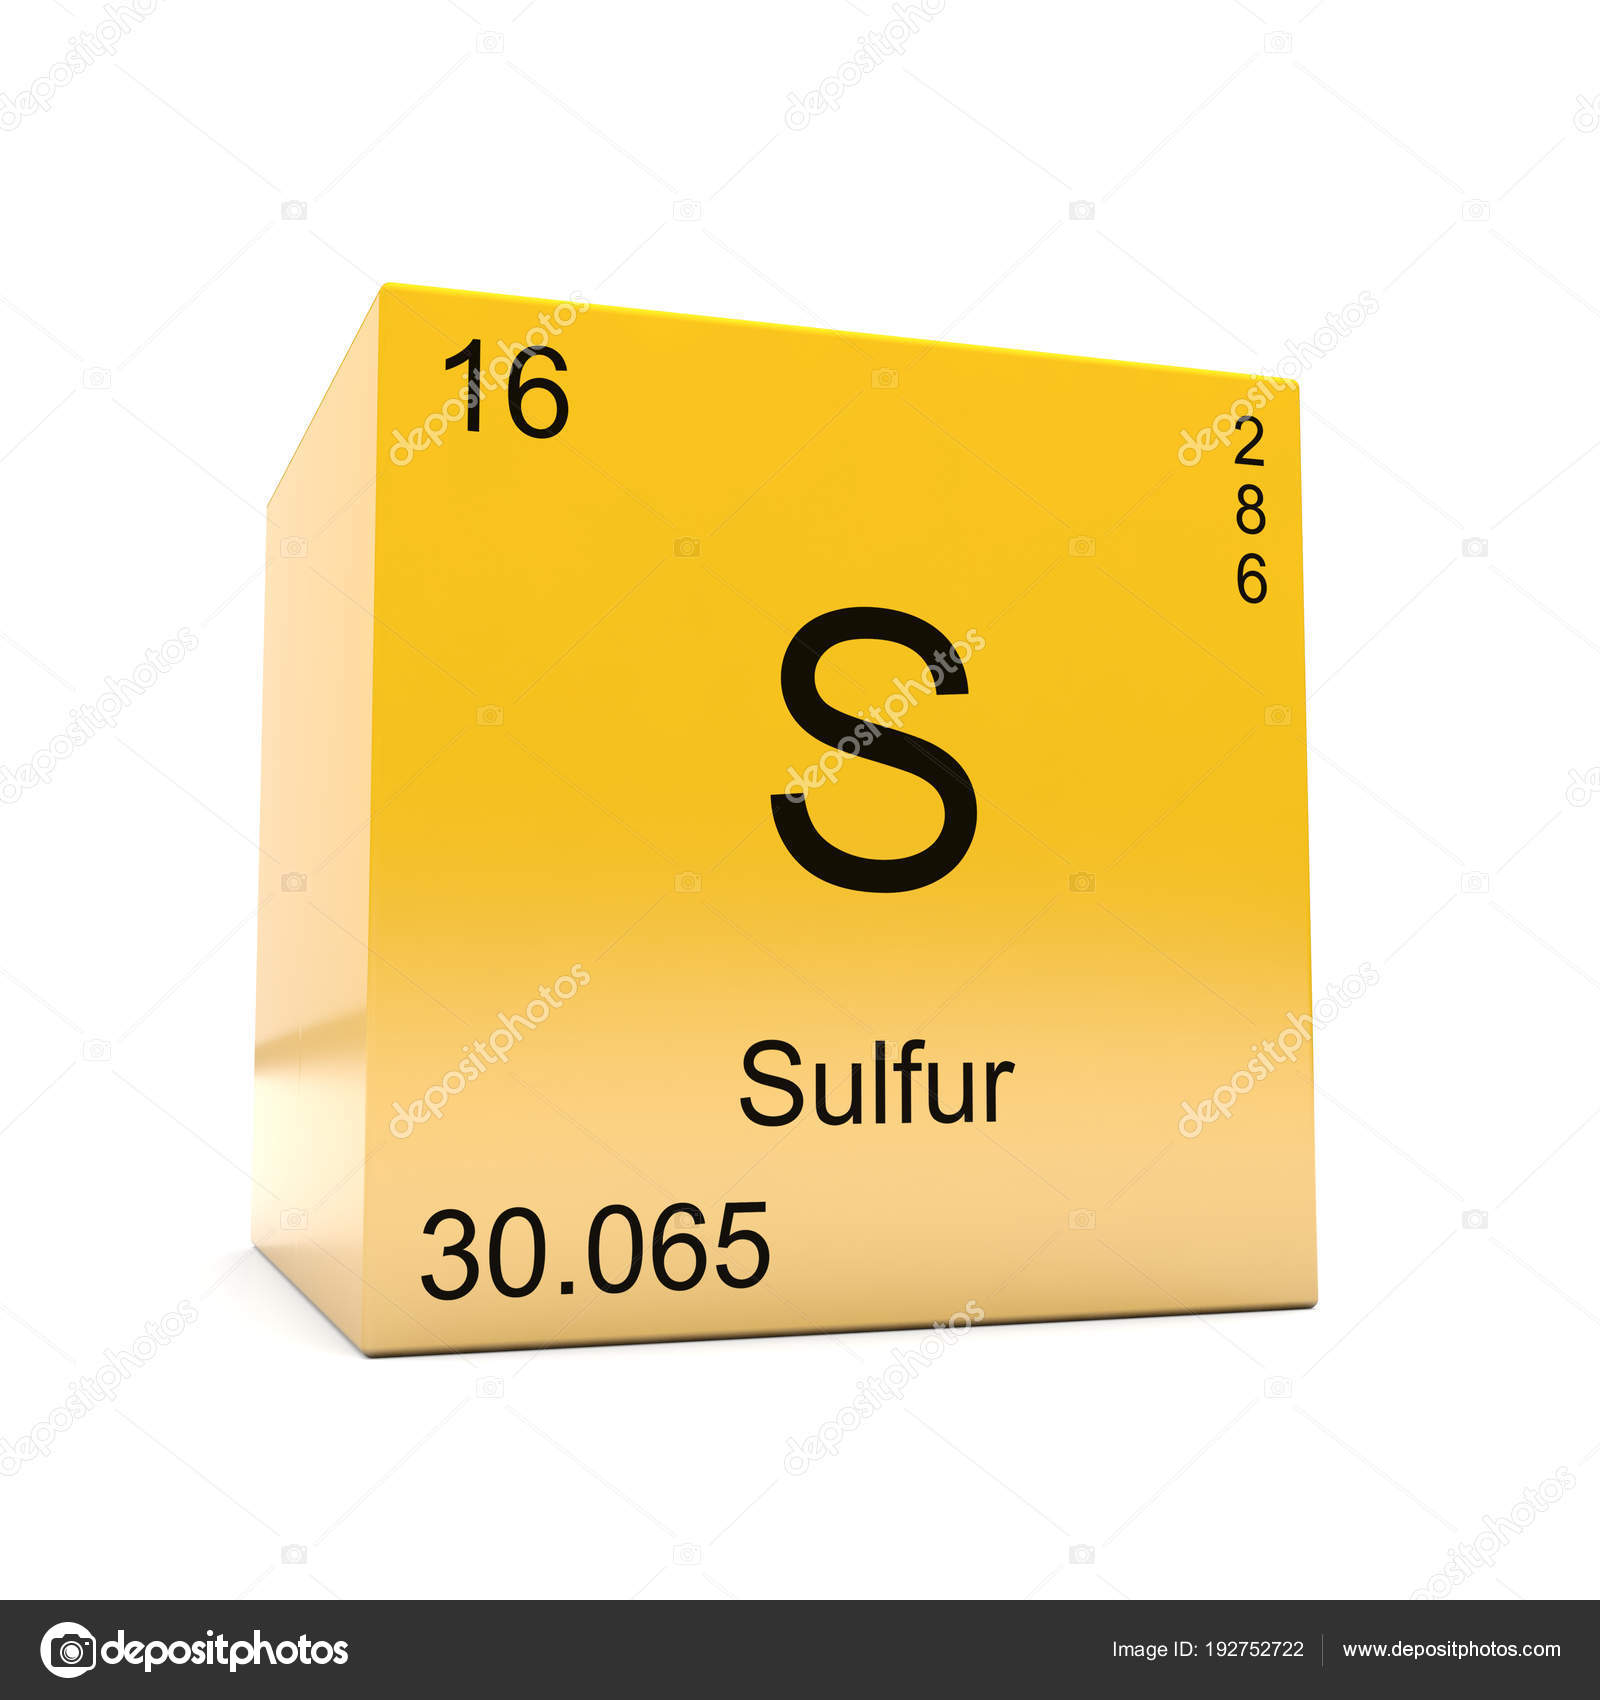 Sulfur Chemical Element Symbol Periodic Table Displayed Glossy